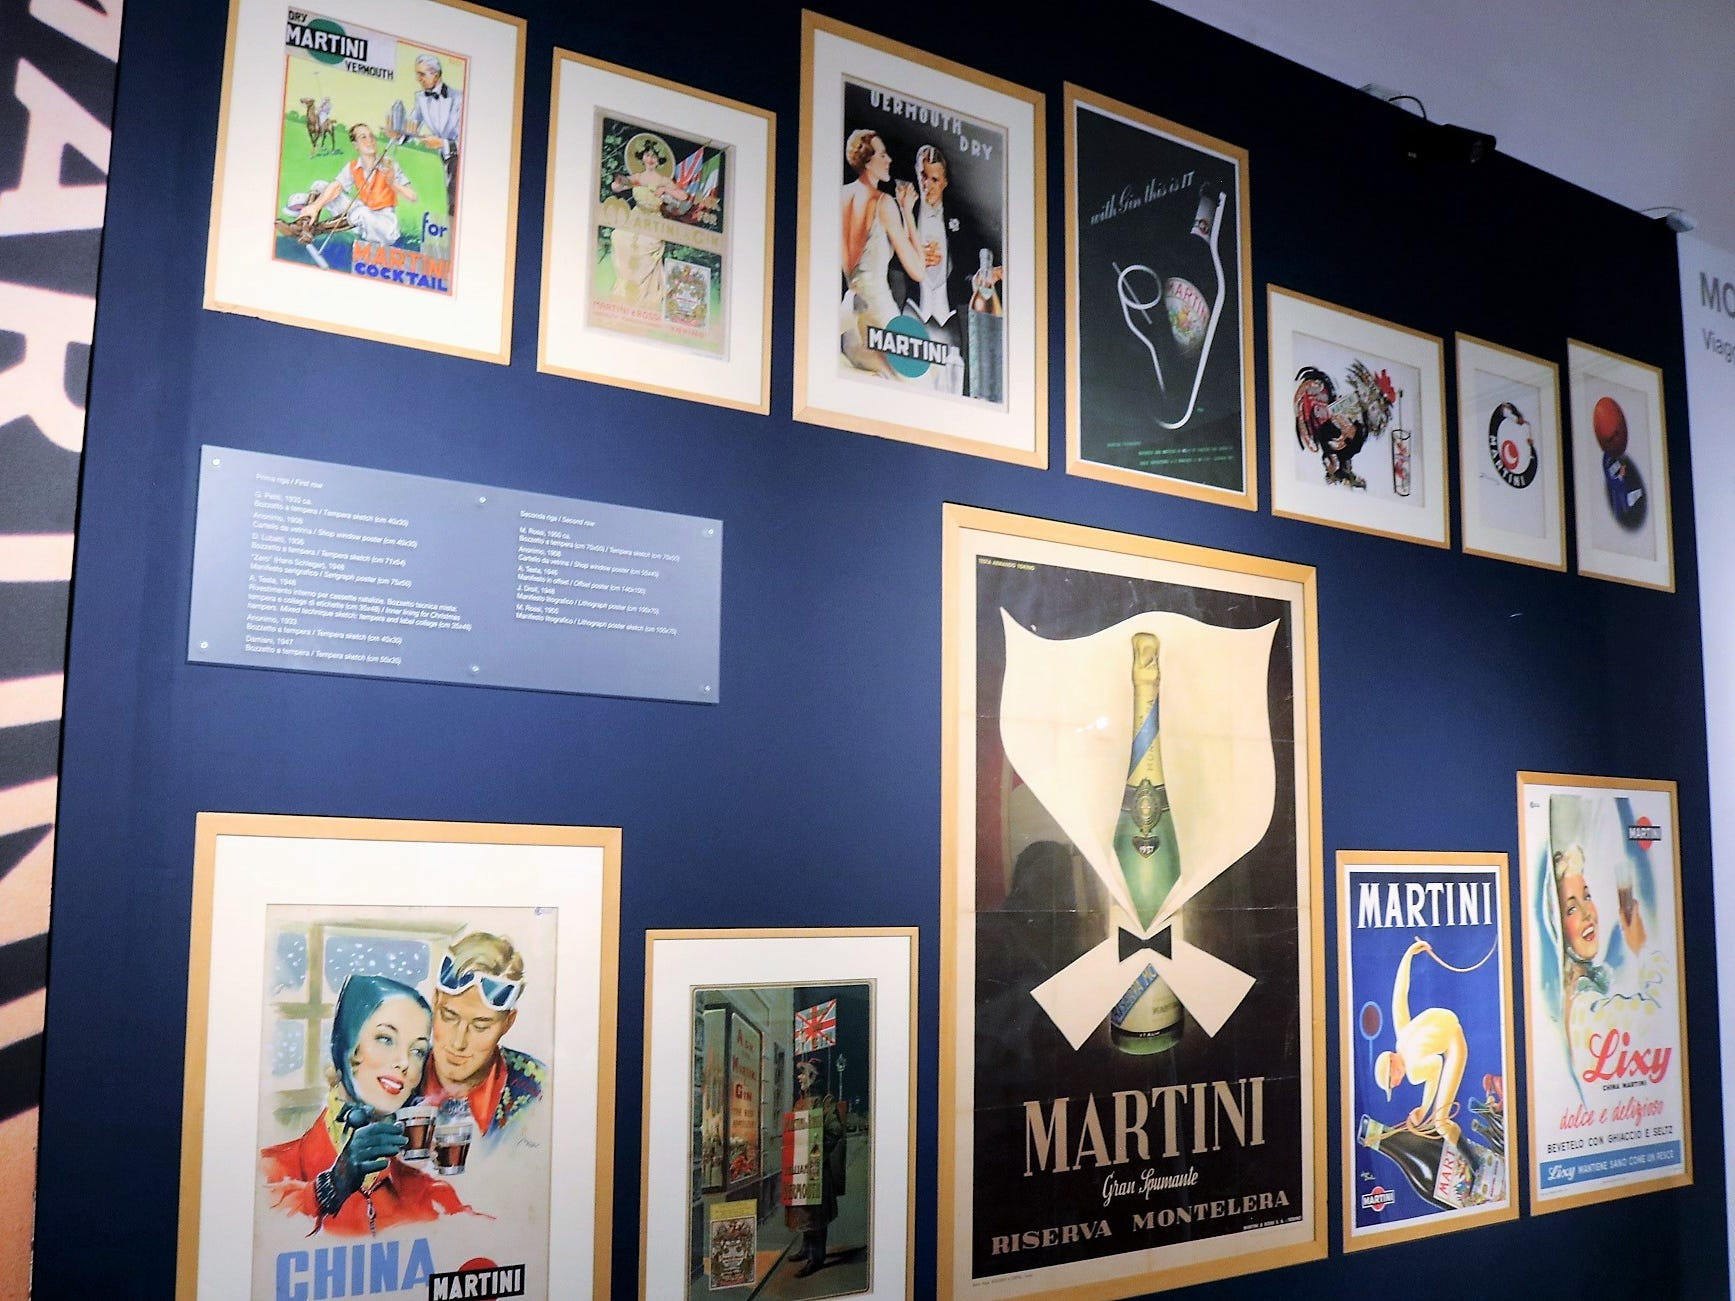 """Martini's message was often one of style, fun and inspiration. """"The dream and the aspiration is always a part of our connection,"""" Fanciotto says. """"To enjoy life with Martini."""""""